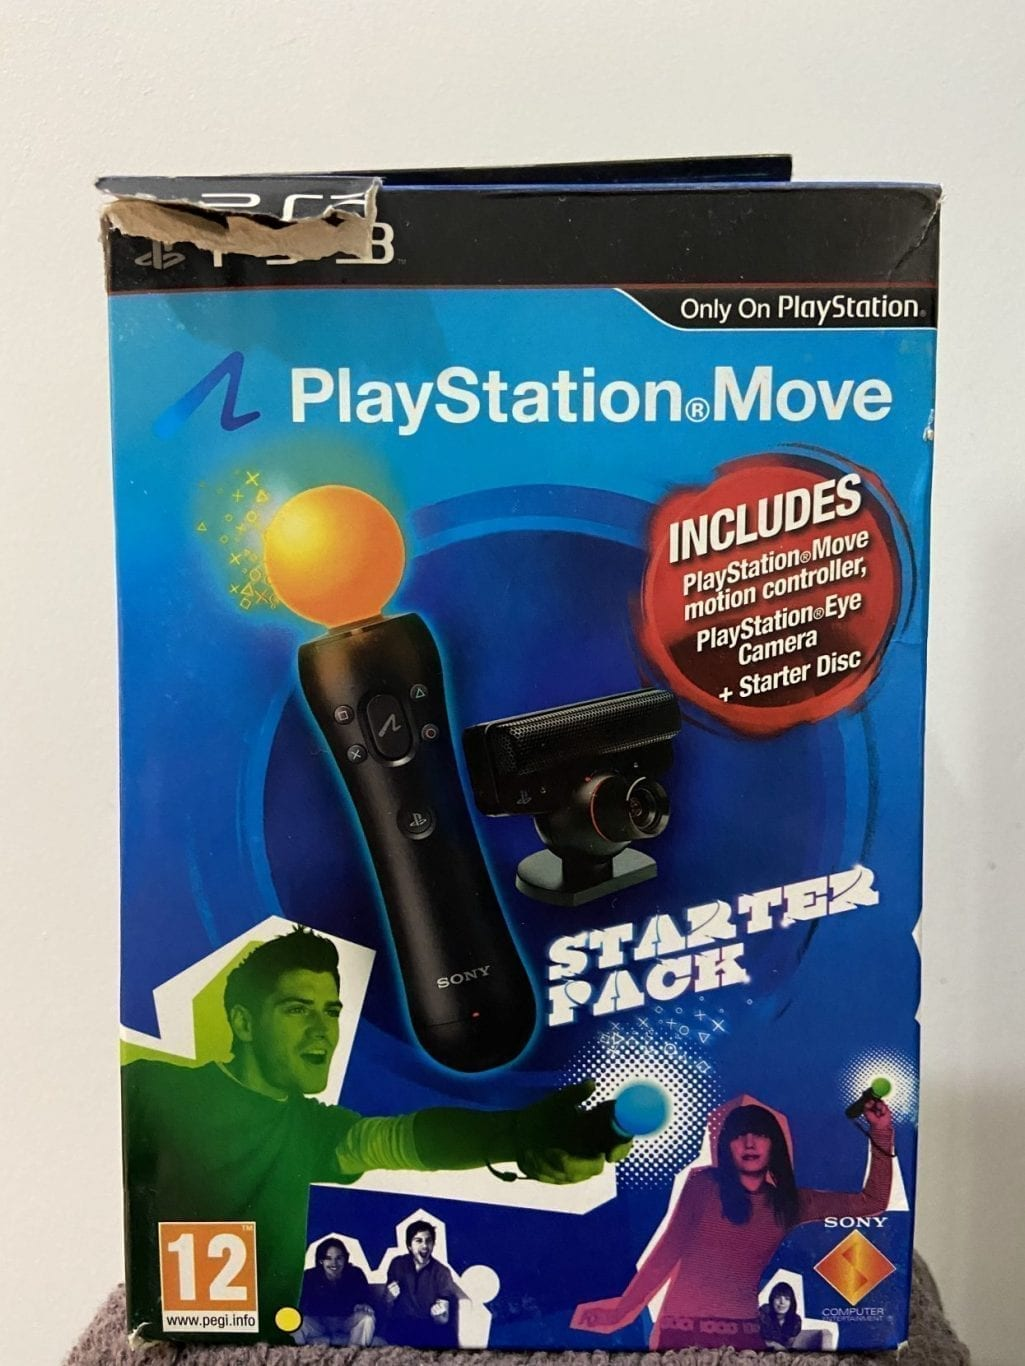 PS3 Playstation Move